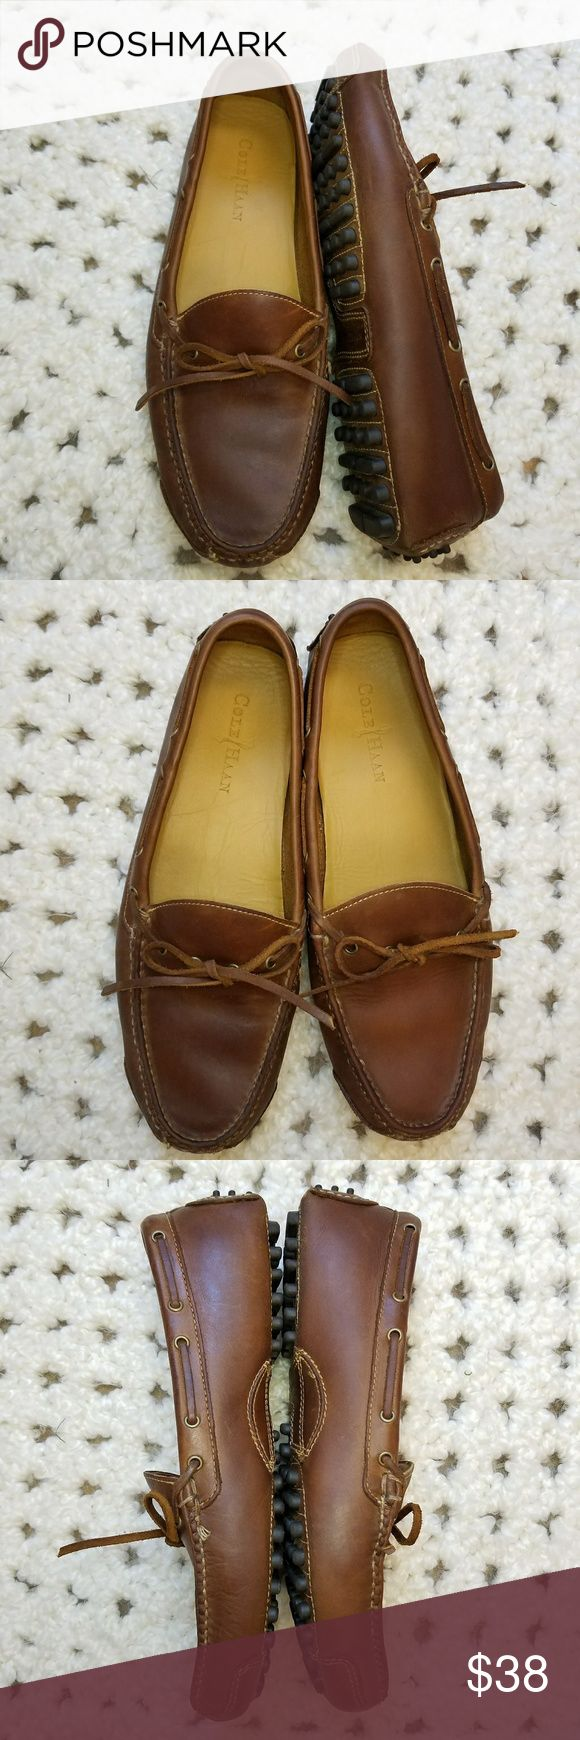 Cole Haan Grant Driver Loafers Cole Haan Grant Driver Loafers in excellent used condition. Size 9.5D. Minimal wear. Light scuffs on heels. Chestnut colored leather. Cole Haan Shoes Loafers & Slip-Ons